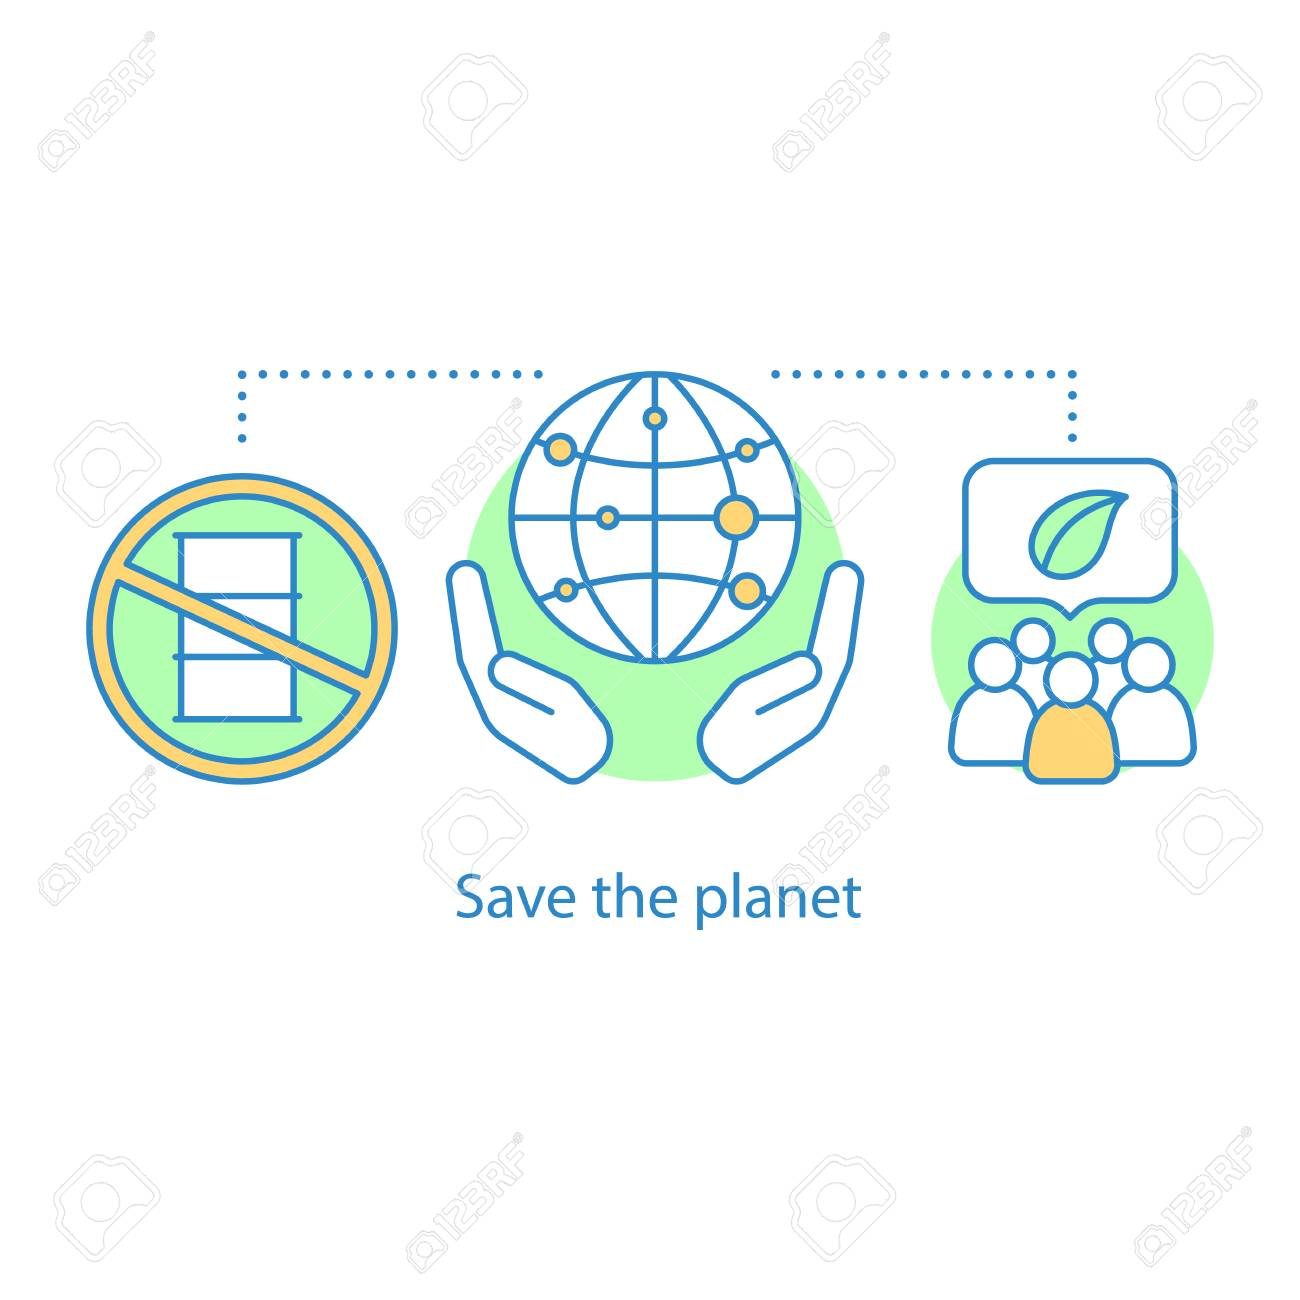 Vector isolated outline drawing planet saving concept icon environmental movement idea thin line illustration pollution prevention environment